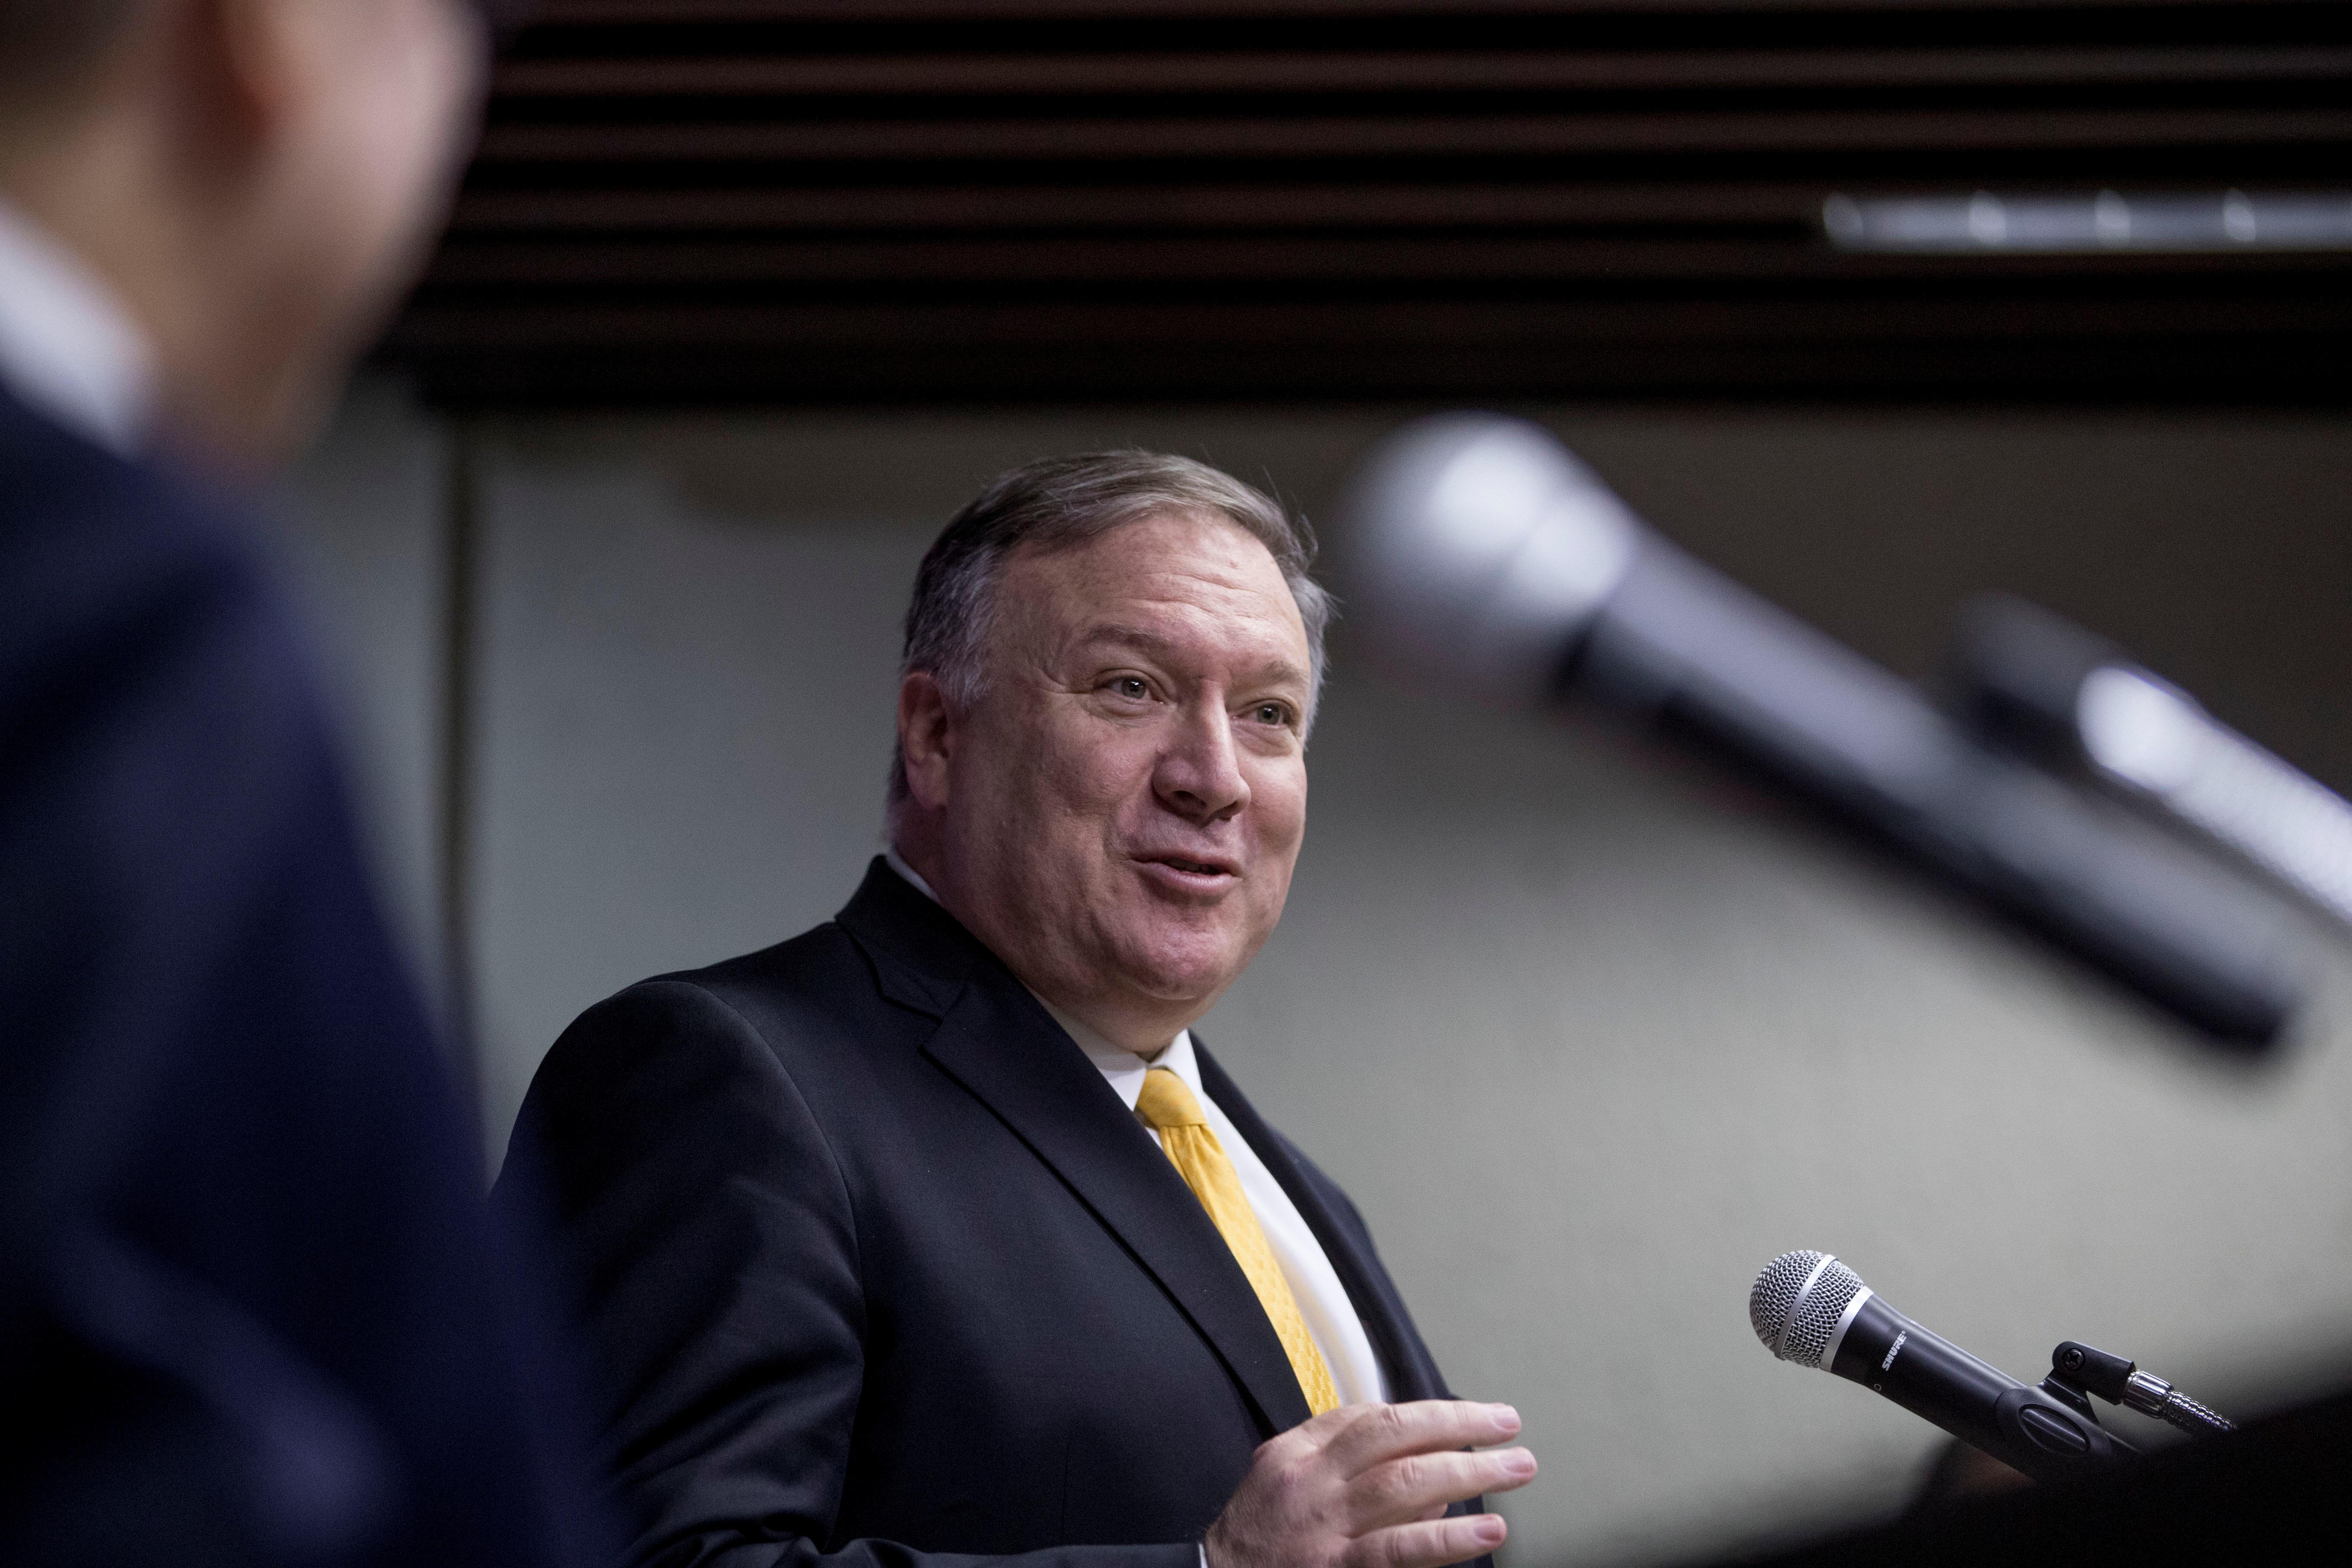 Pompeo says North Korea not clear on scope of closing Yongbyon facility